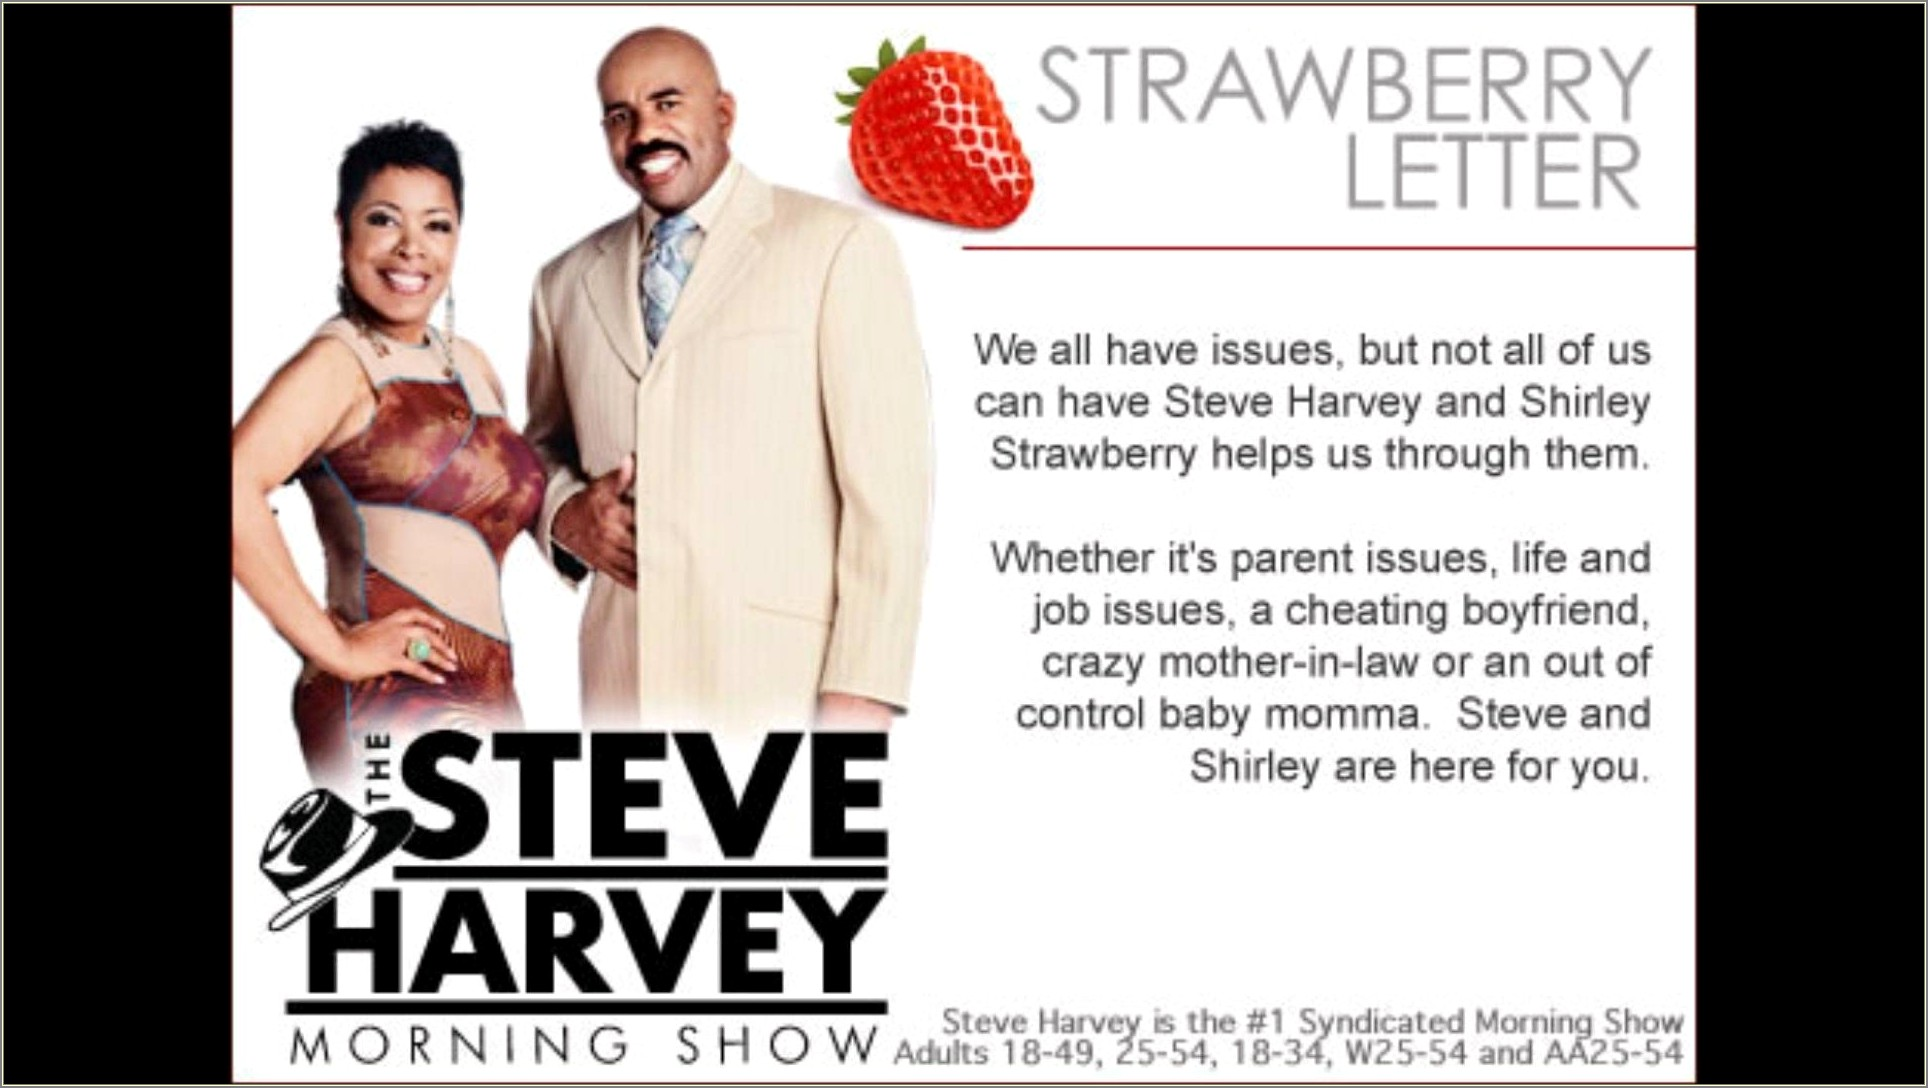 Steve Harvey Strawberry Letter Massage